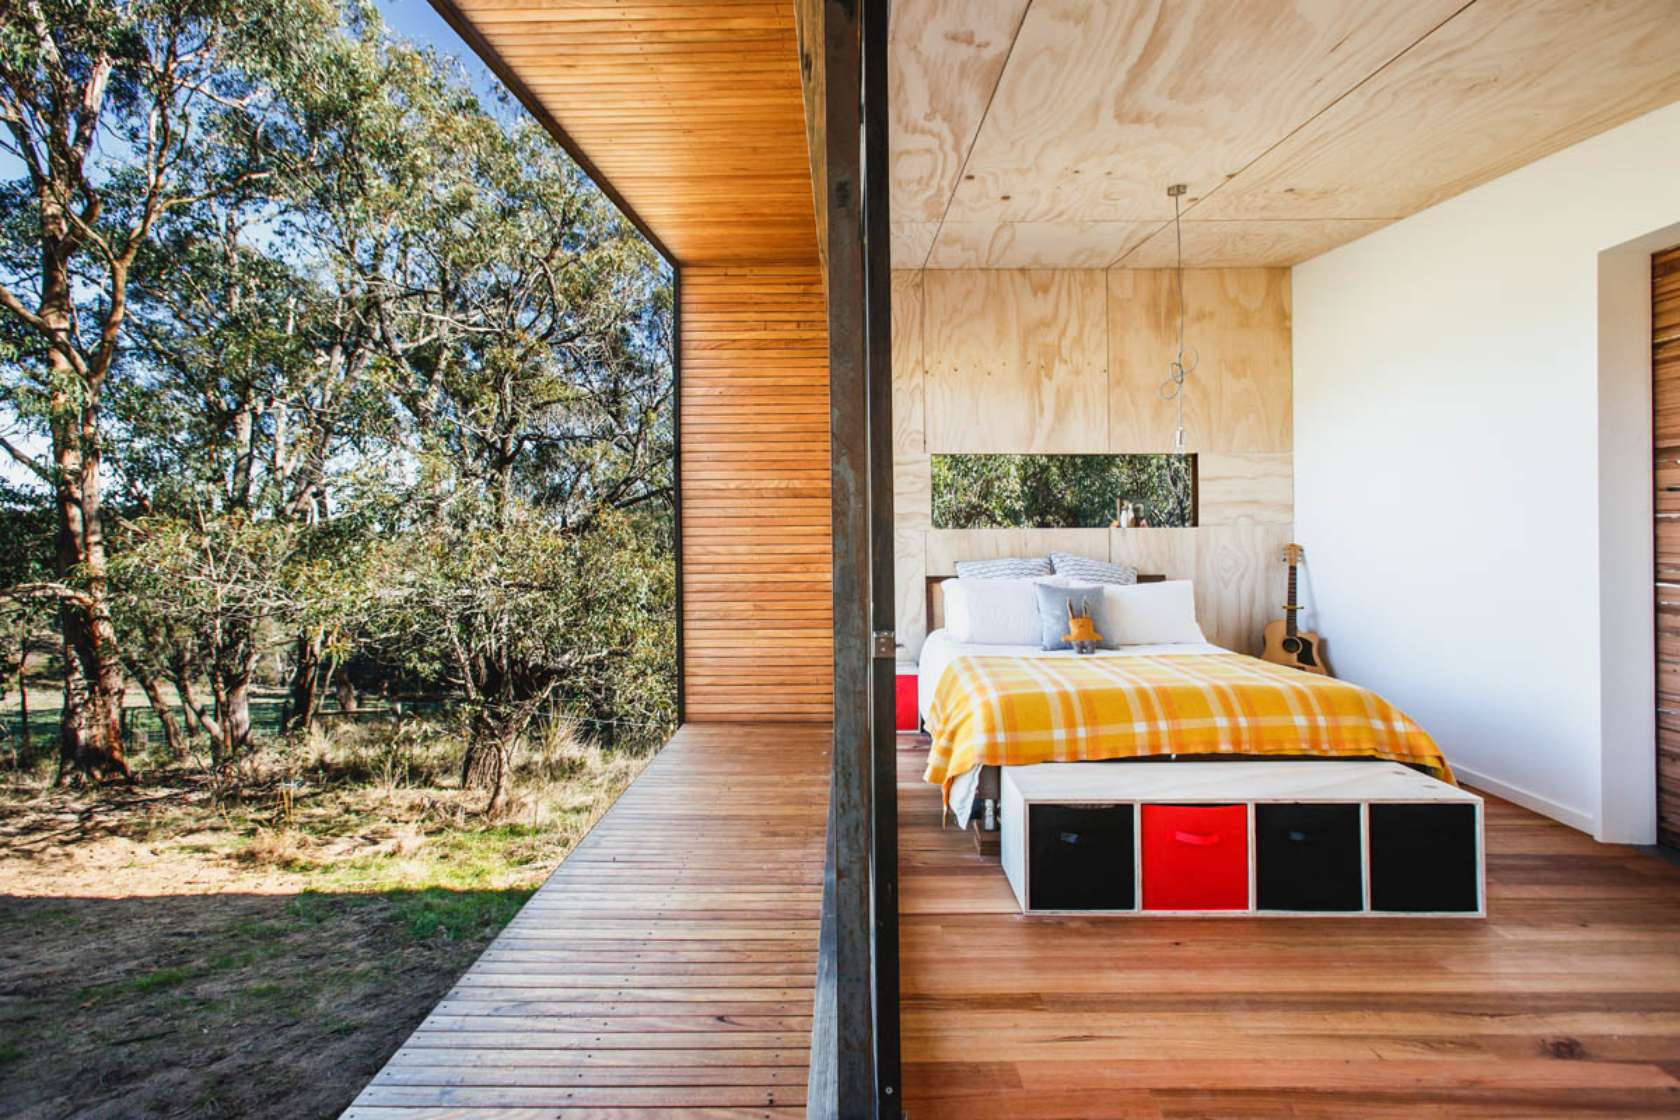 Pump house a compact off grid home for simple living for Studio australia